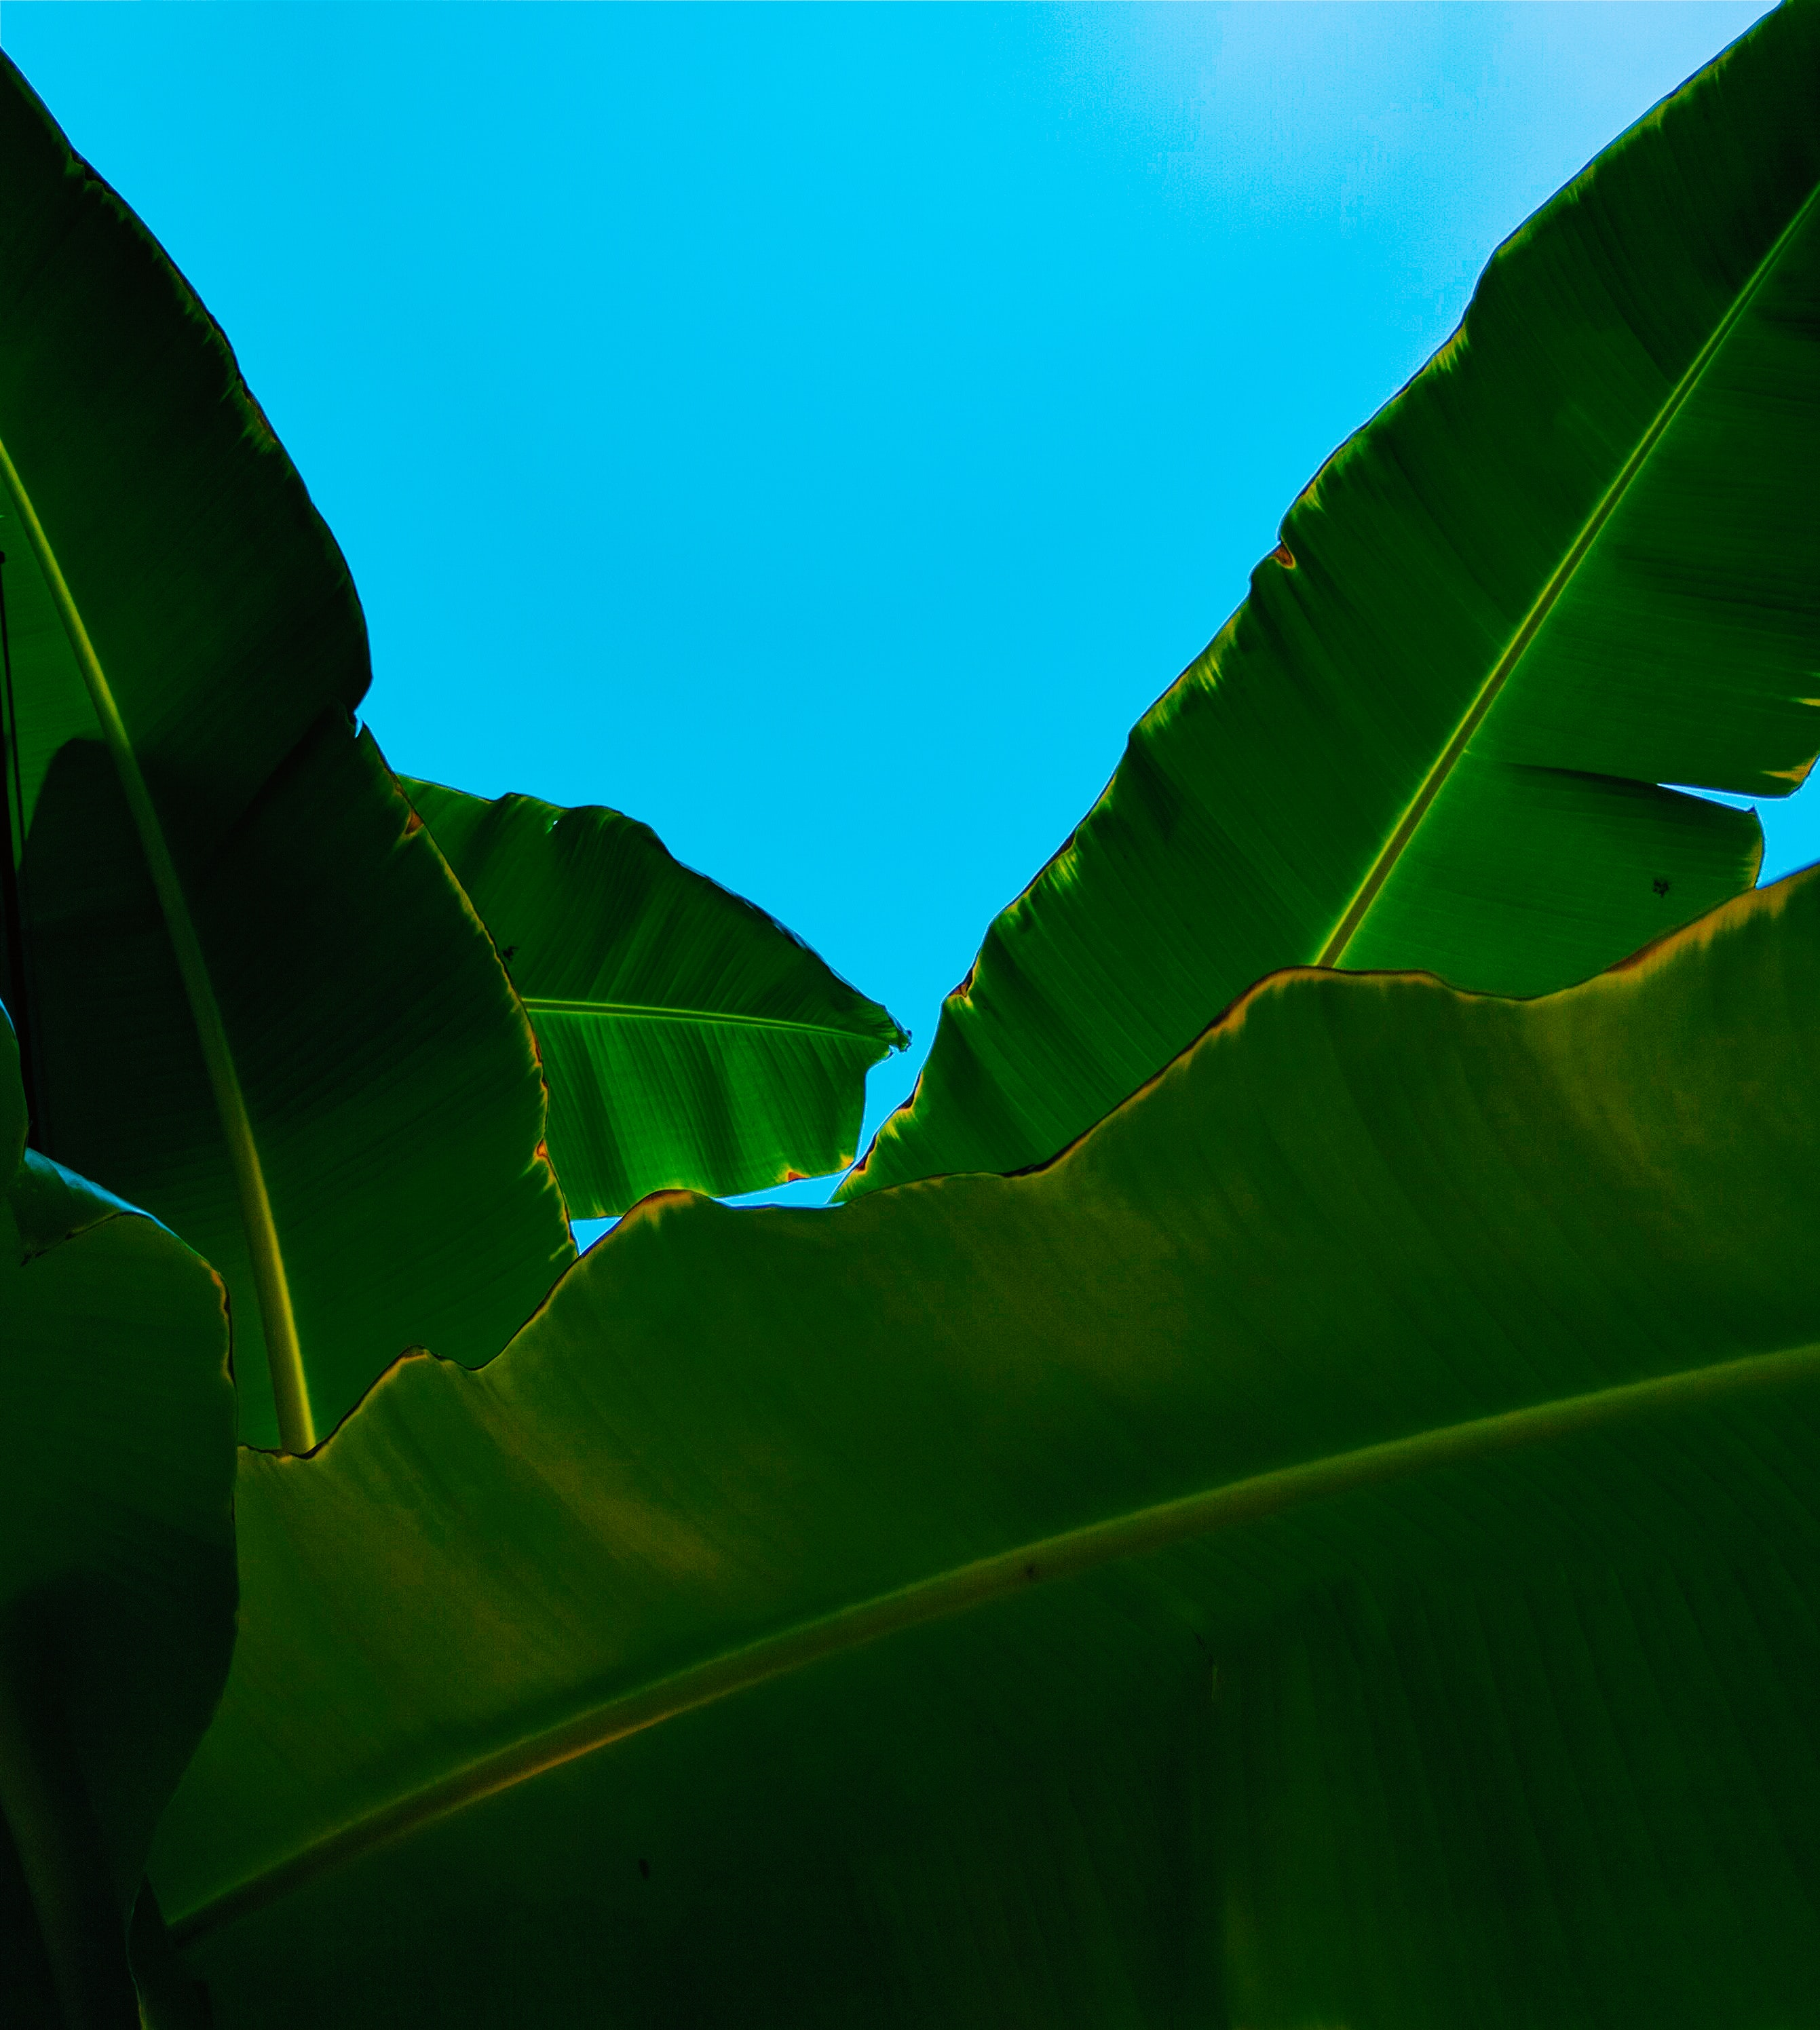 worms-eye-view of banana leaves